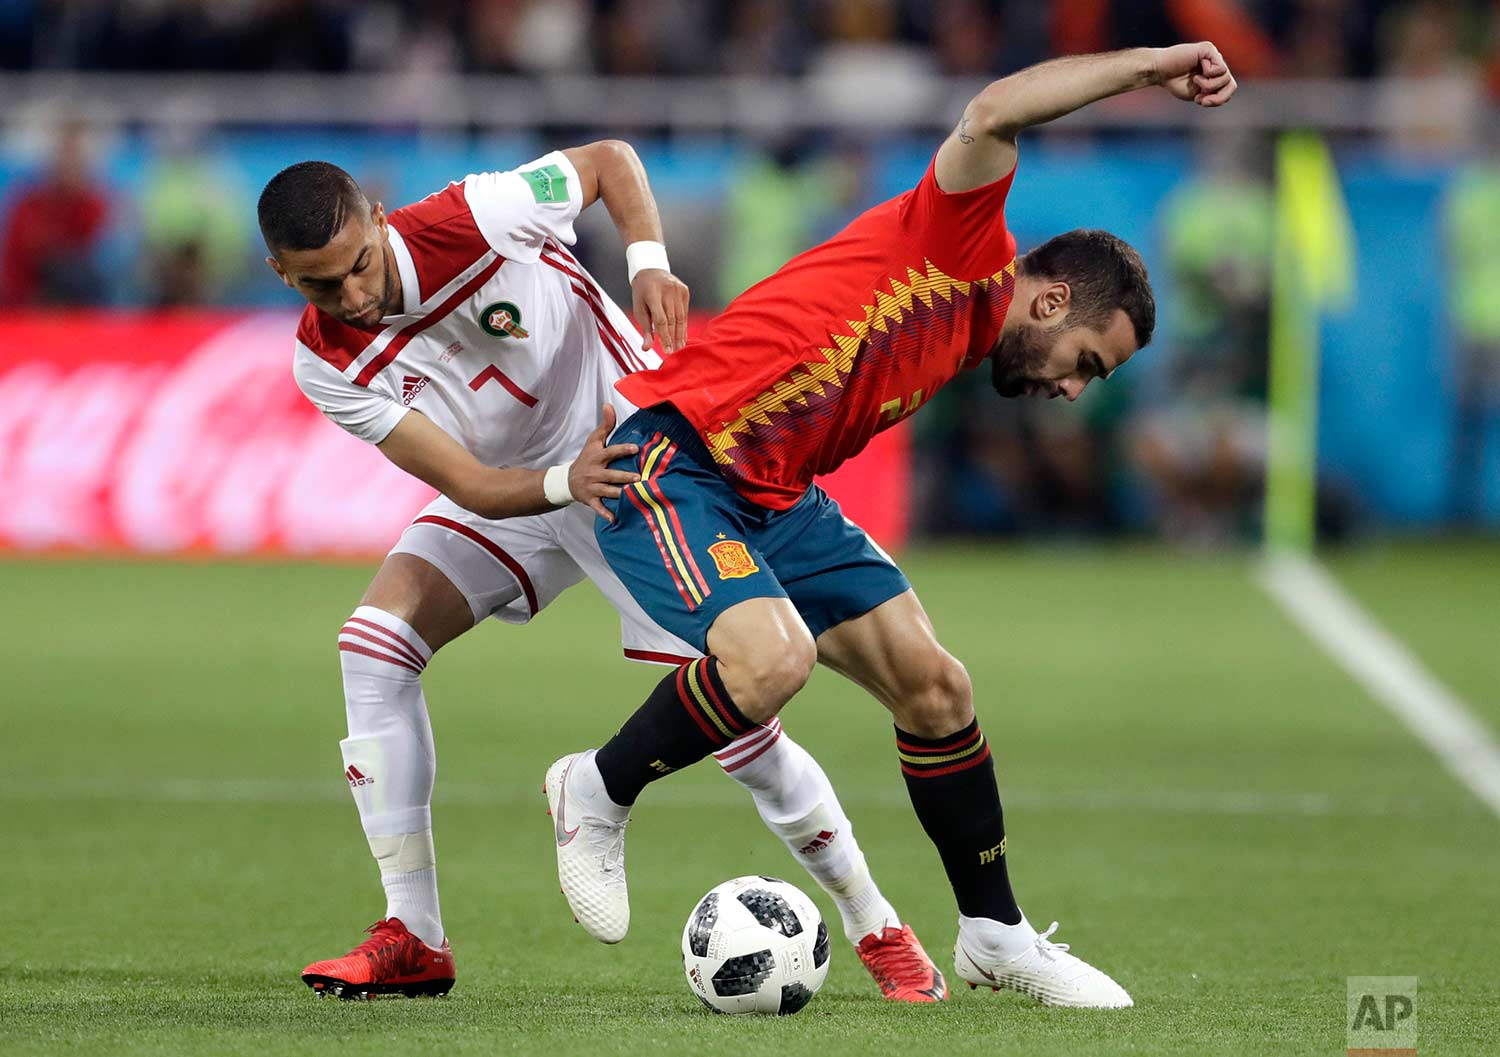 Morocco's Hakim Ziyach, left, challenges for the ball with Spain's Dani Carvajal during the group B match between Spain and Morocco at the 2018 soccer World Cup at the Kaliningrad Stadium in Kaliningrad, Russia, Monday, June 25, 2018. (AP Photo/Petr David Josek)